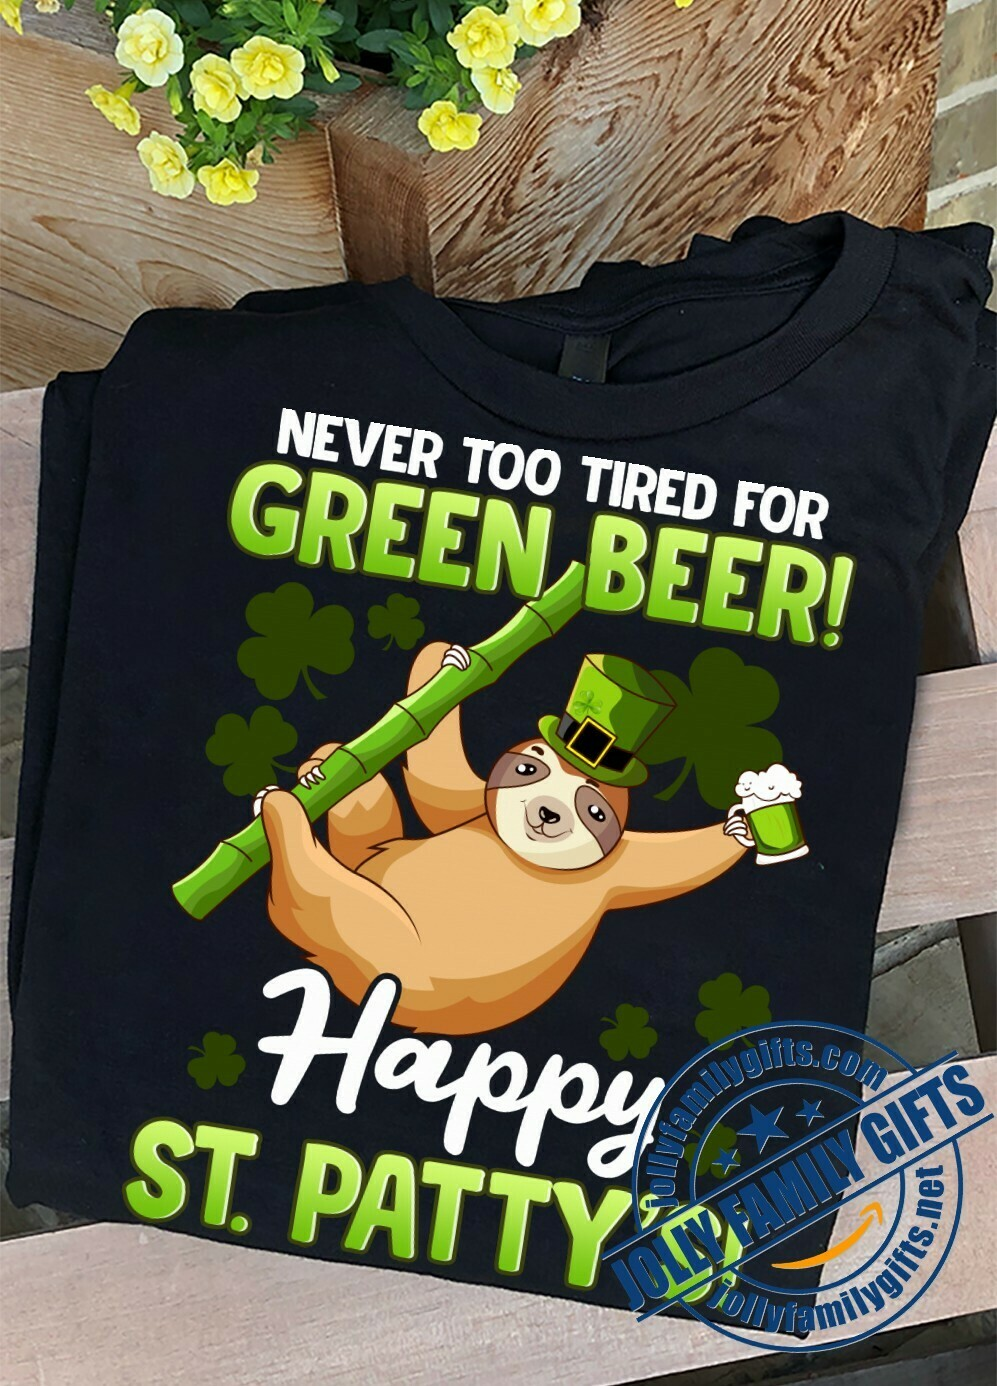 Irish Sloth Drinker Never Too Tired For Green Beer St Patrick's Day  Unisex T-Shirt Hoodie Sweatshirt Sweater Plus Size for Ladies Women Men Kids Youth Gifts Tee Jolly Family Gifts